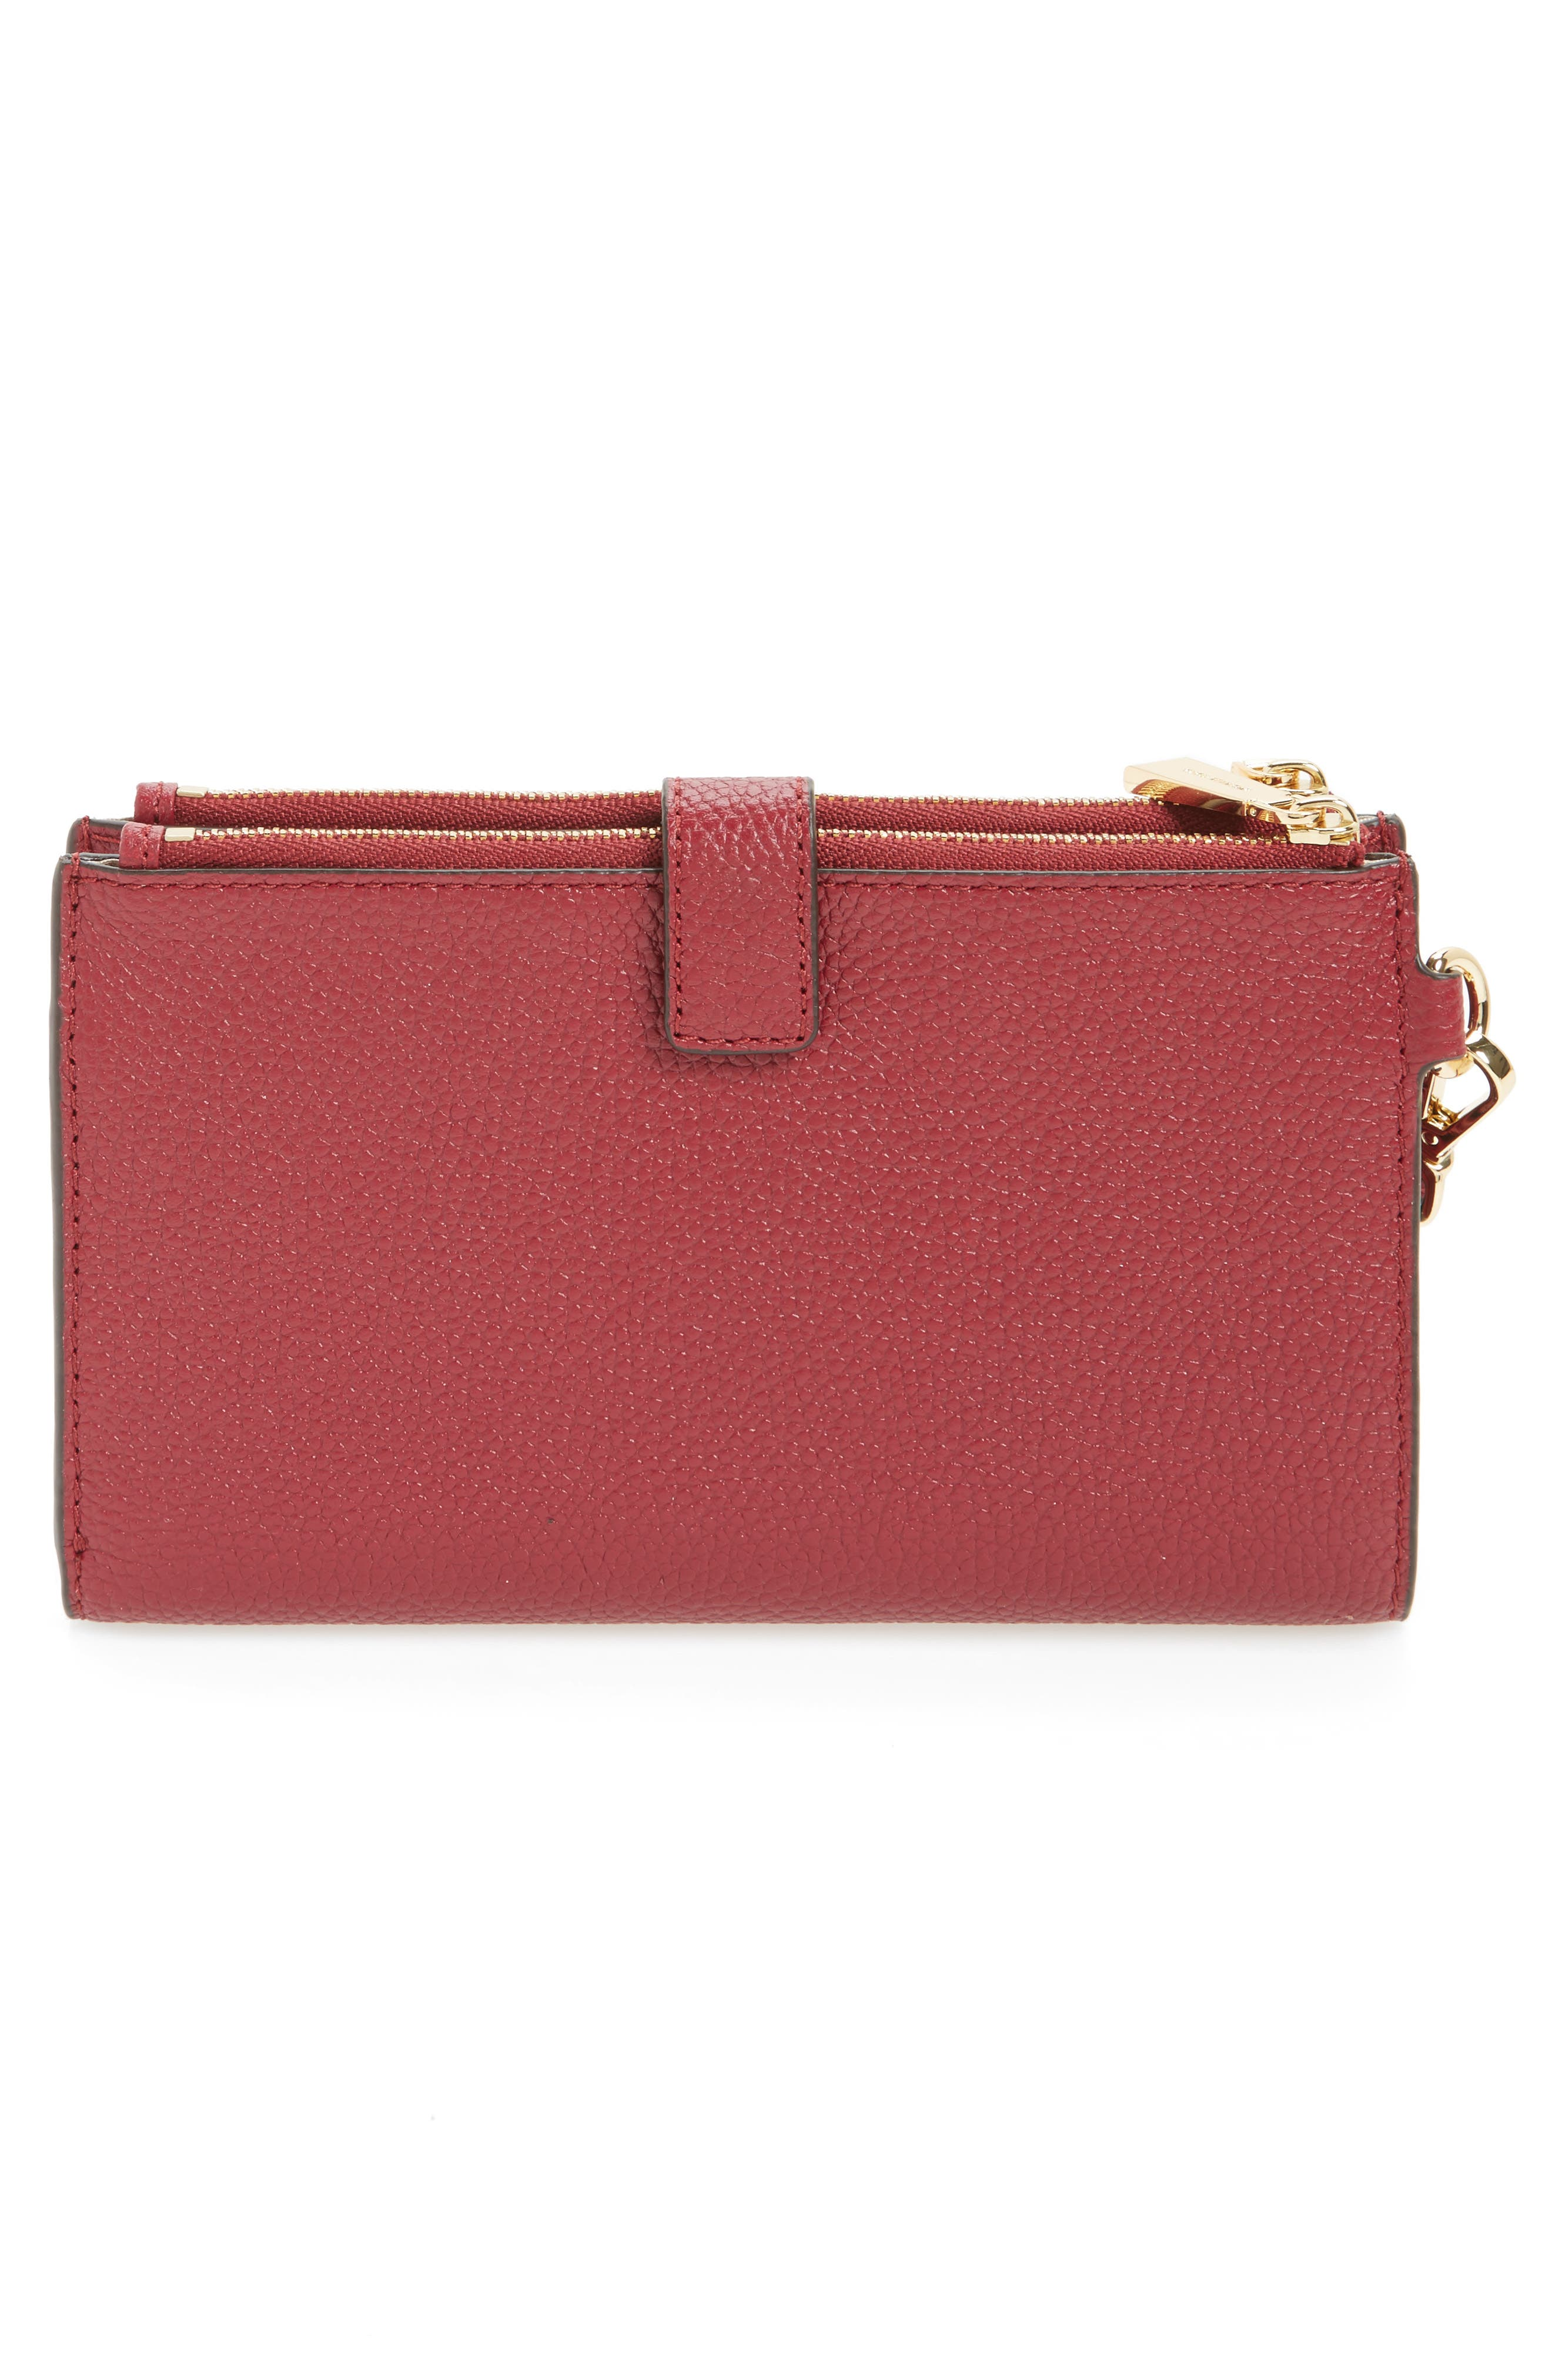 Adele Leather Wristlet,                             Alternate thumbnail 23, color,